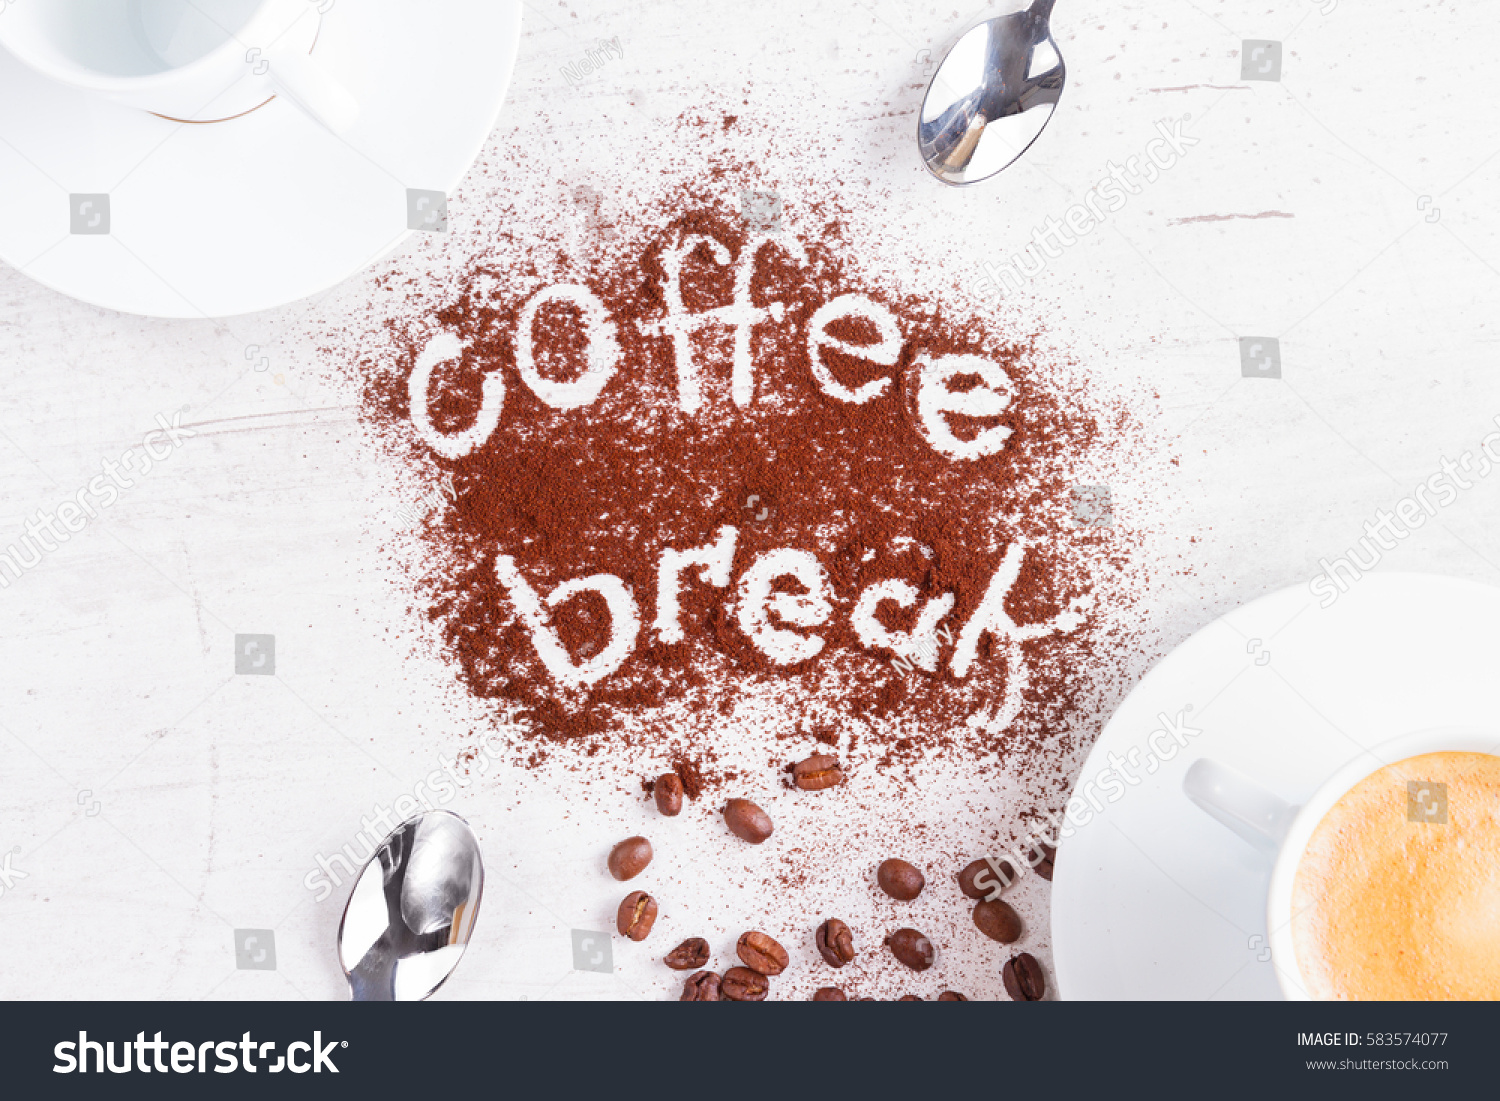 coffee break concept - cups of espresso, spoons and coffee break lettering #583574077